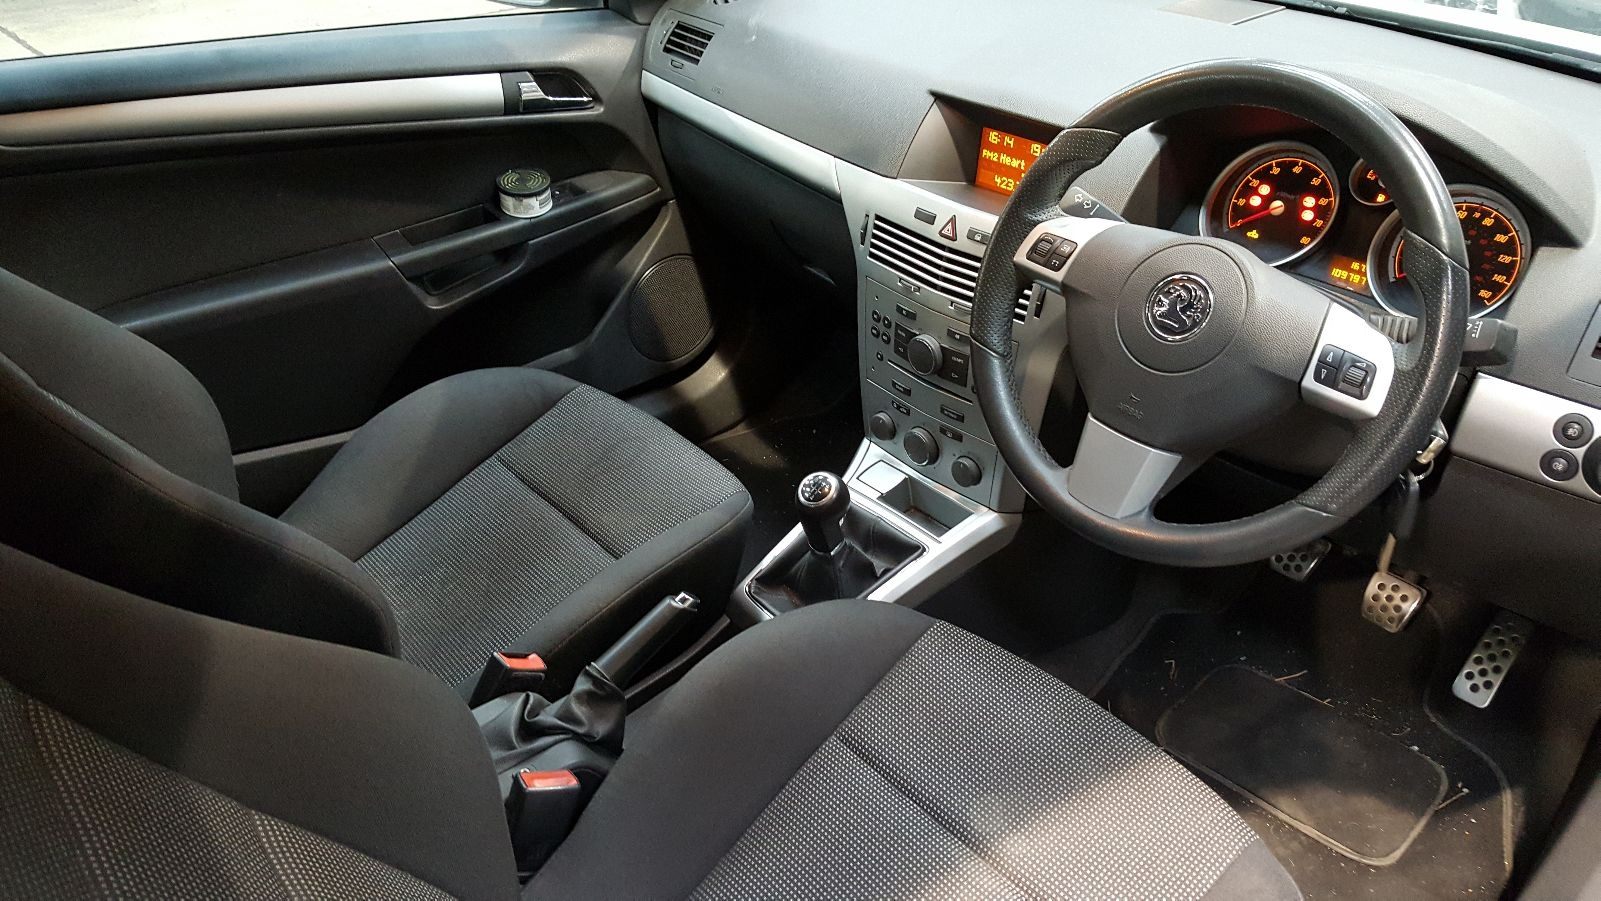 View Auto part Vauxhall Astra 2008 3 Door Hatchback